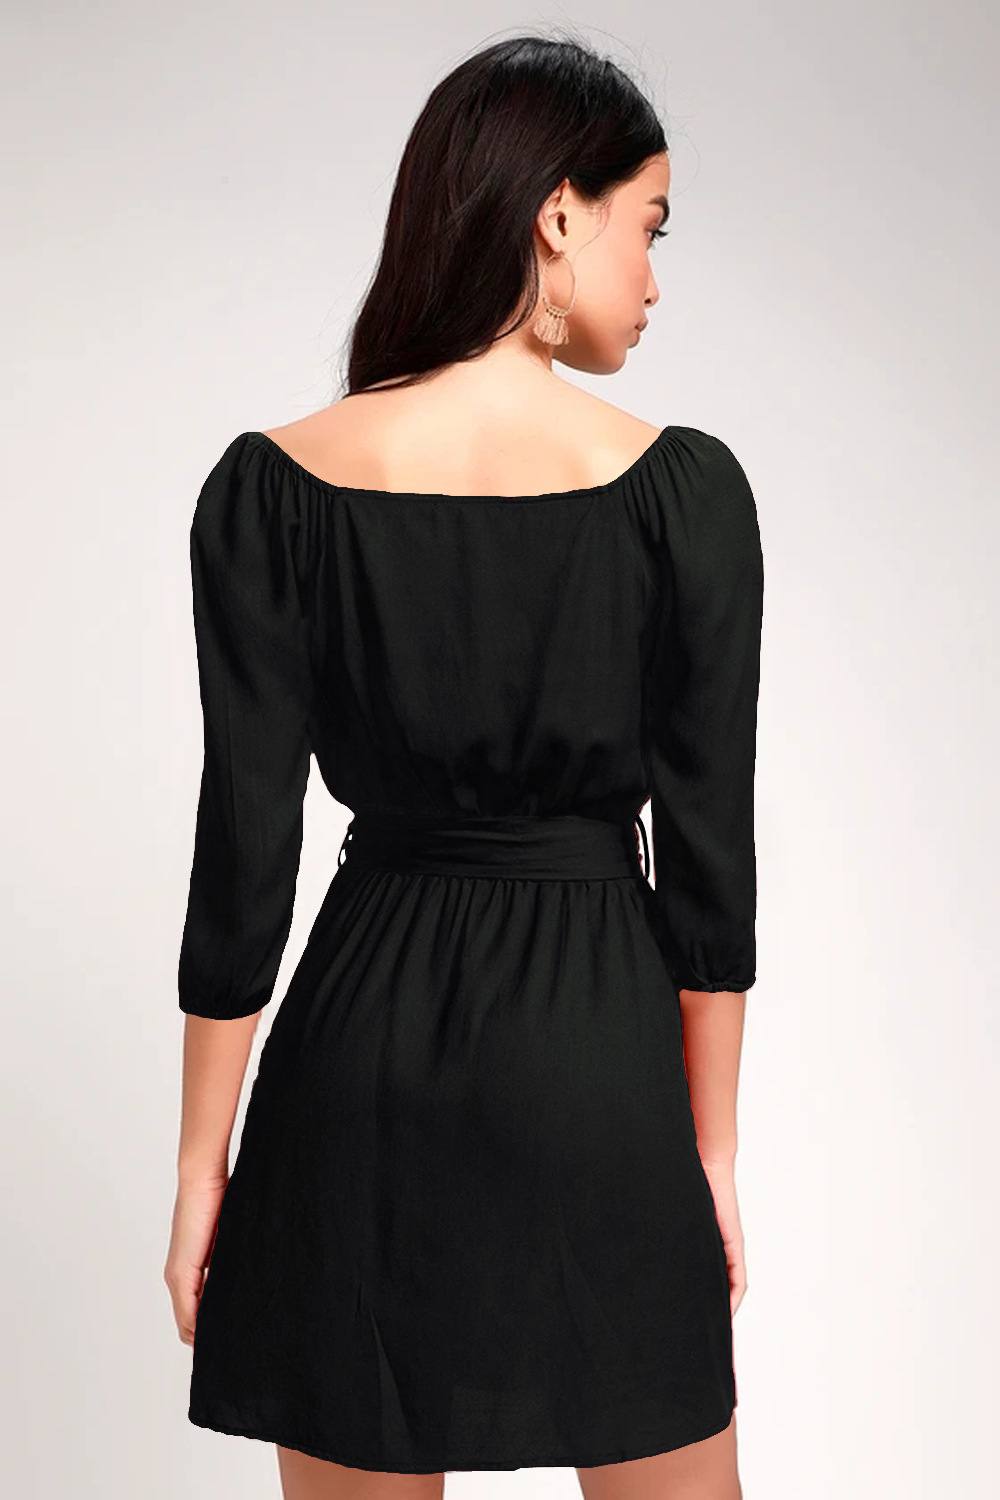 strapless three-quarter sleeves double-breasted women's dress NSDF1854